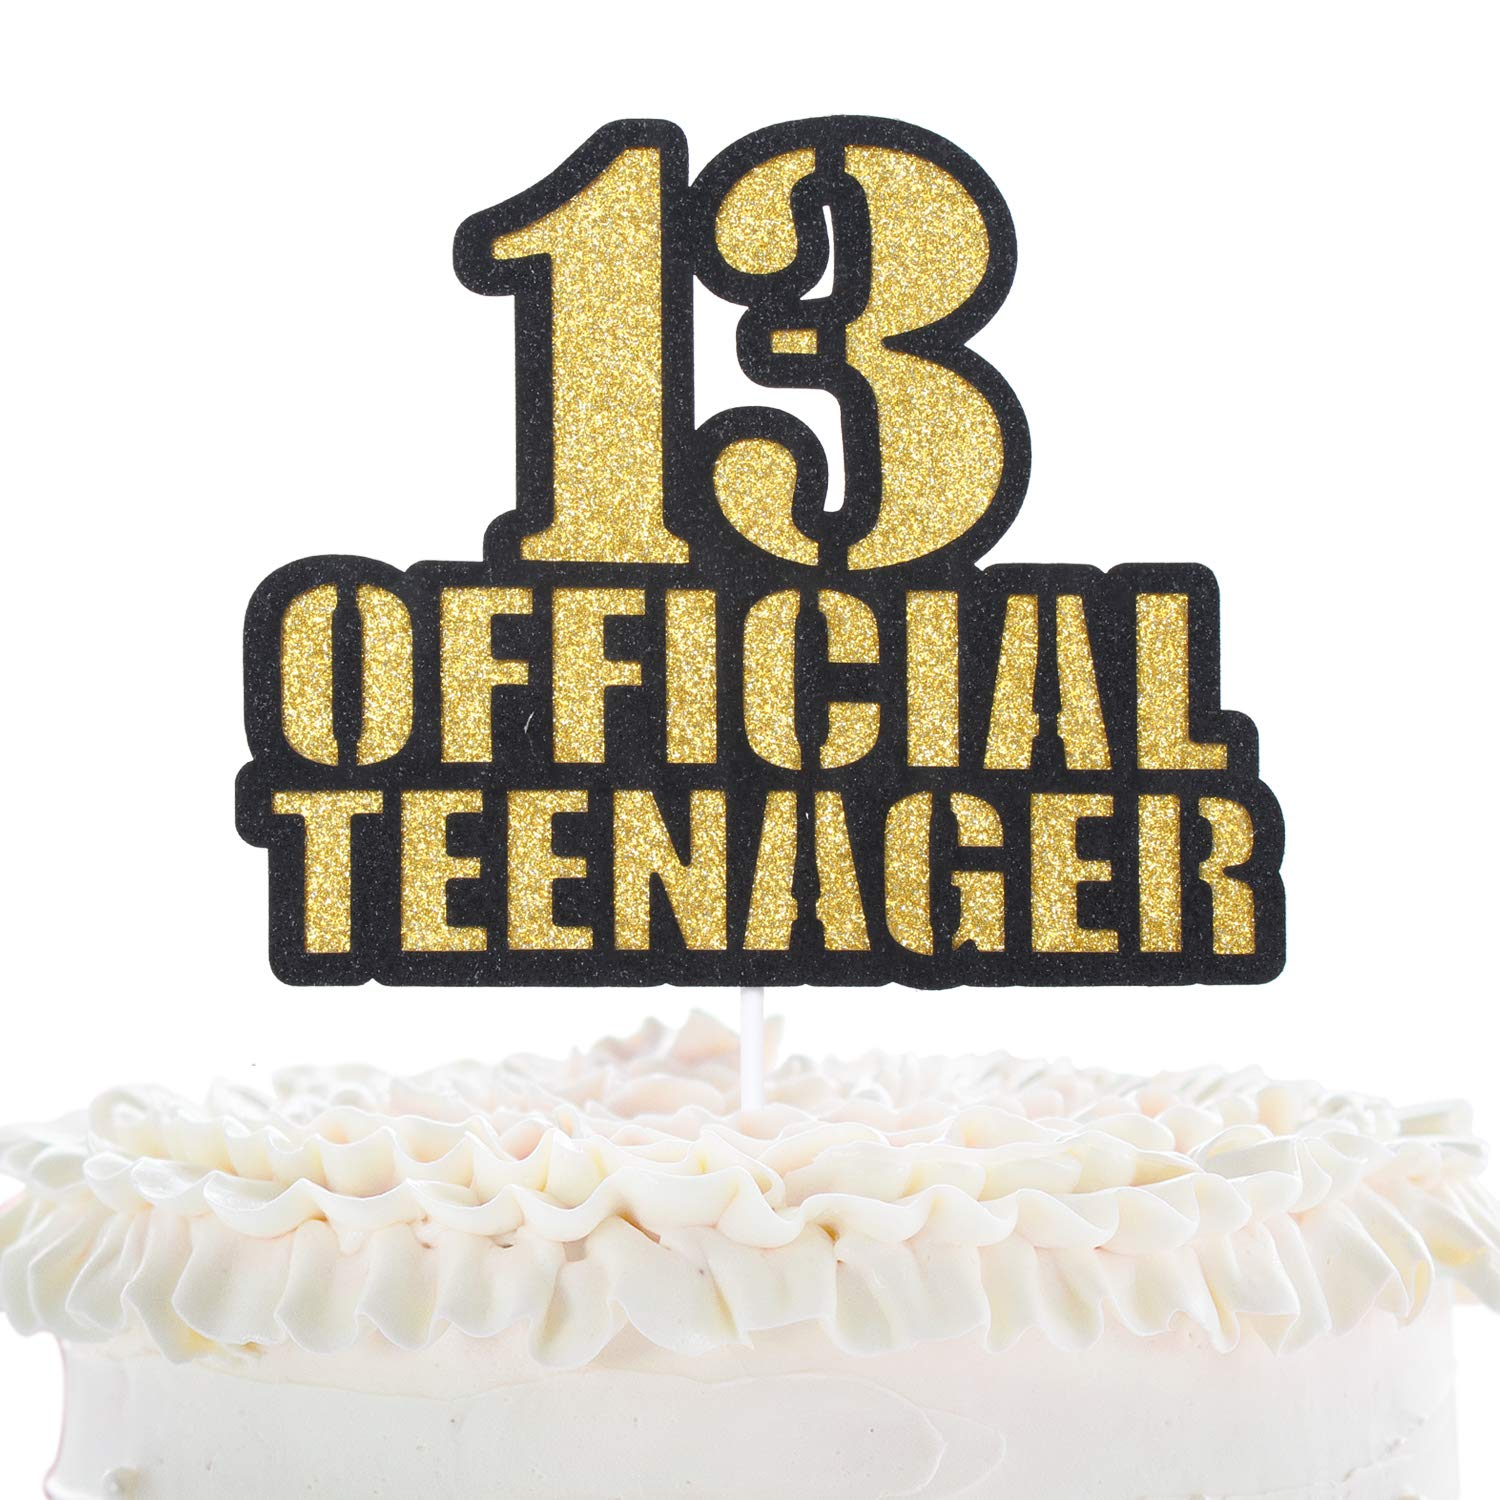 Official Teenager 13 Birthday Cake Topper , Boys Girls 13th Birthday  Ceremony Gold Glitter Cake Décor , Thirteen Years Old Birthday Party  Decoration